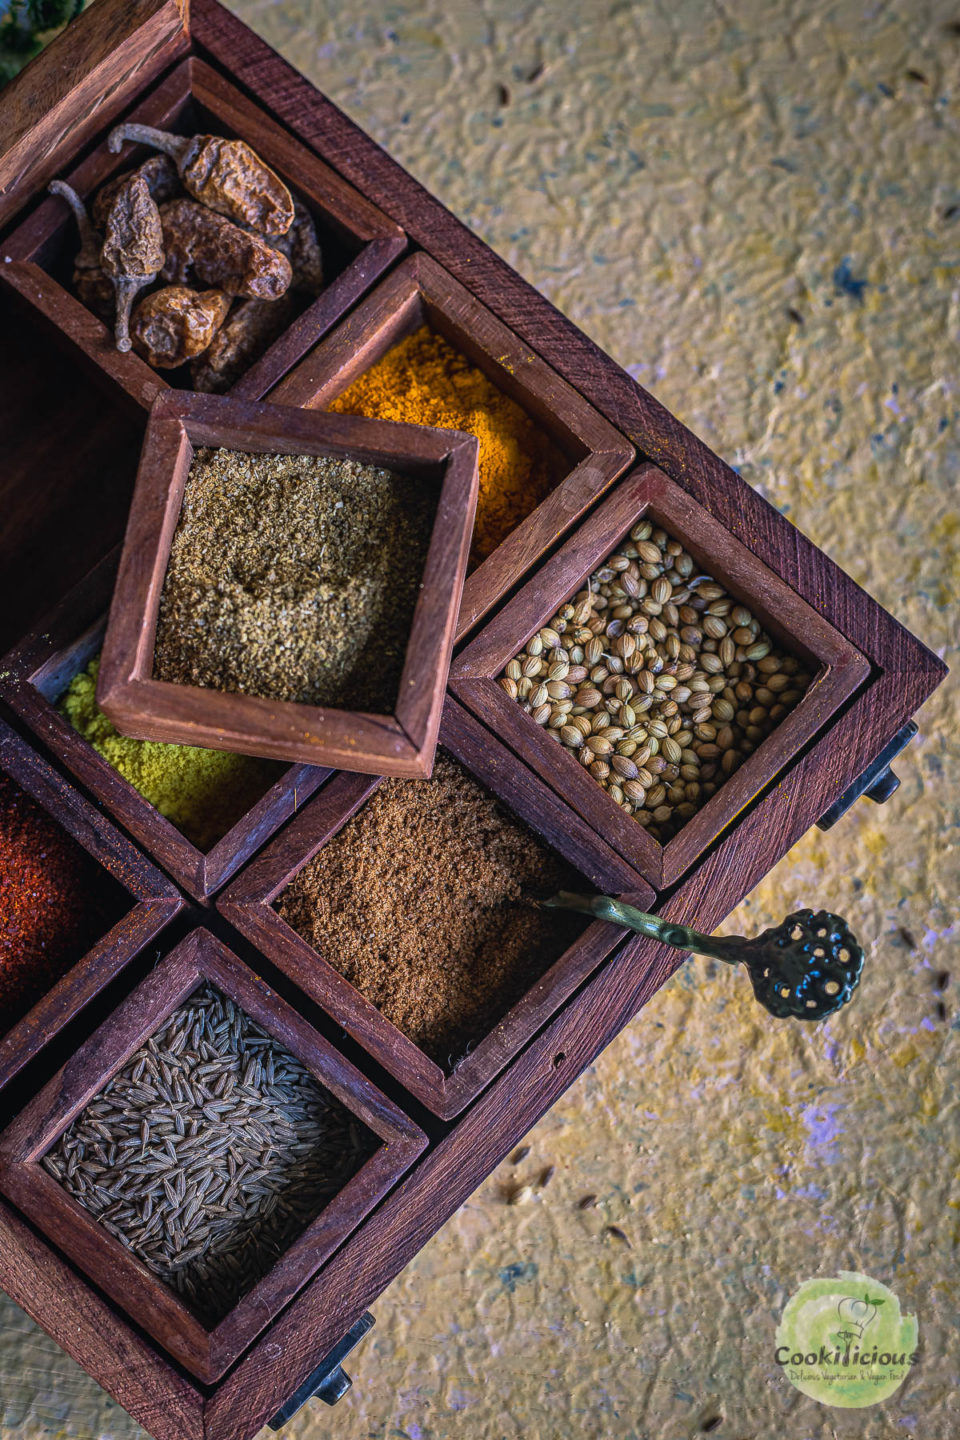 half side of an Indian spice box filled with spices